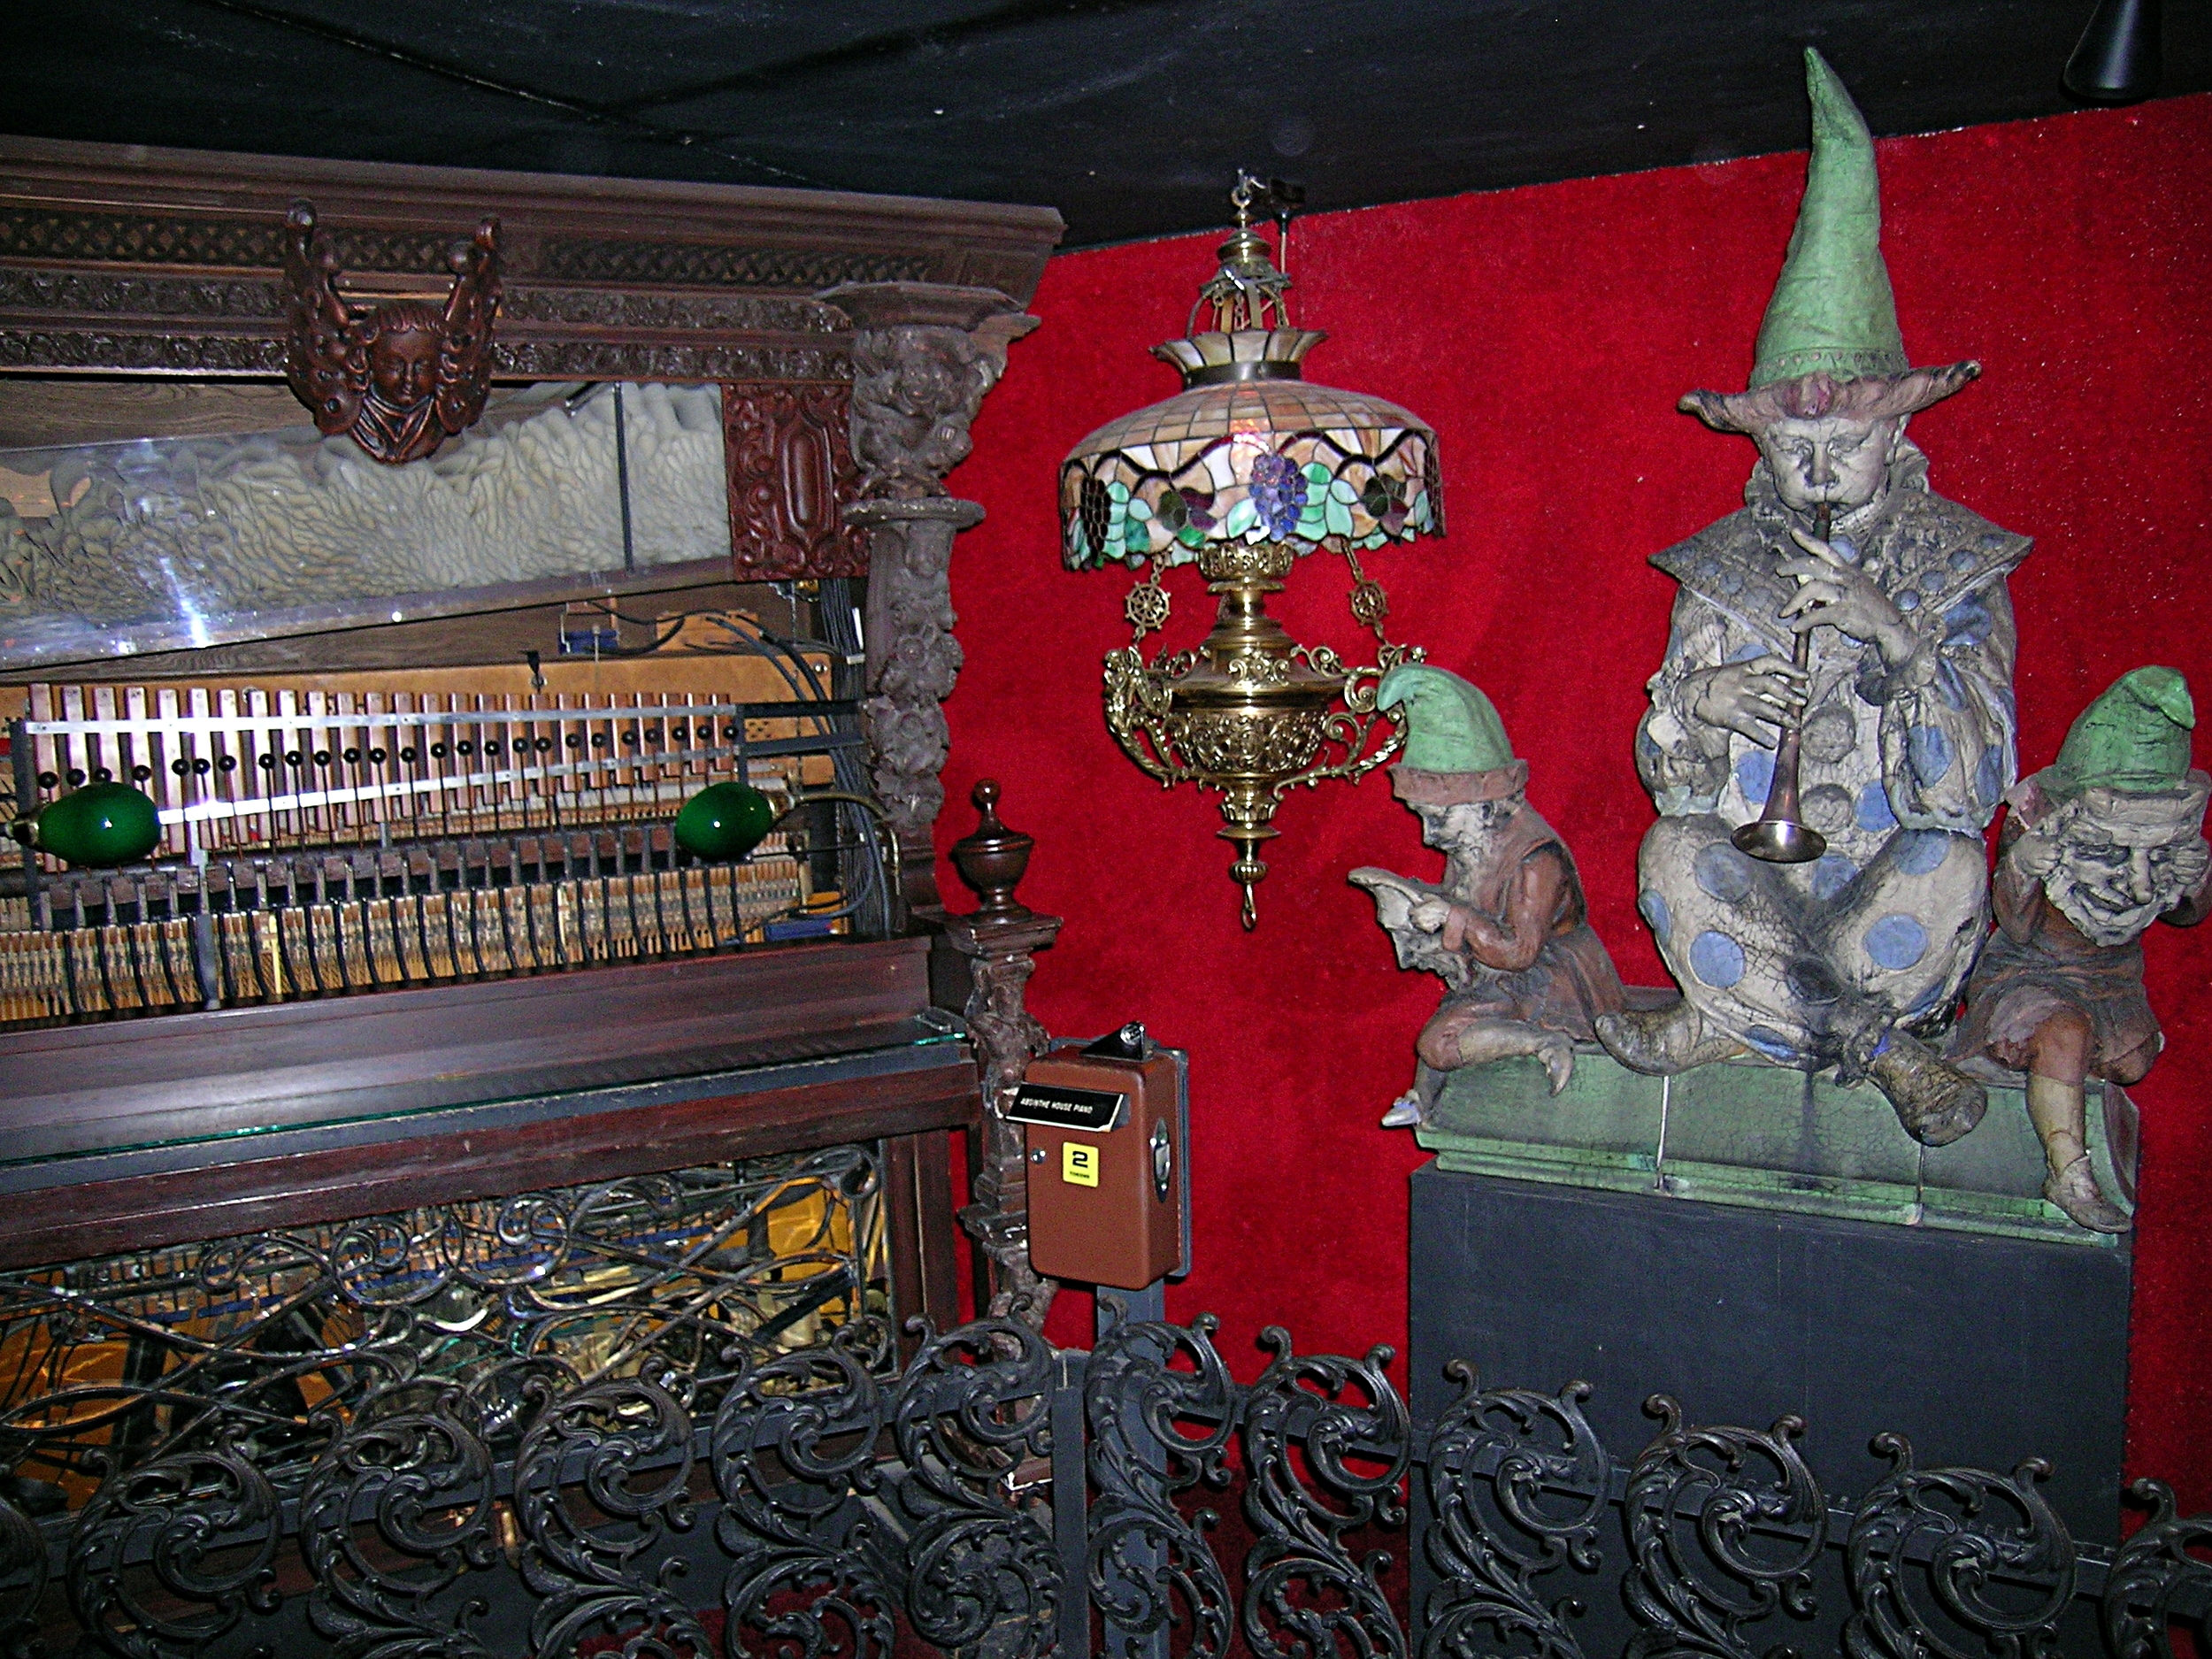 Player Piano - House on the Rock in Spring Green, WI